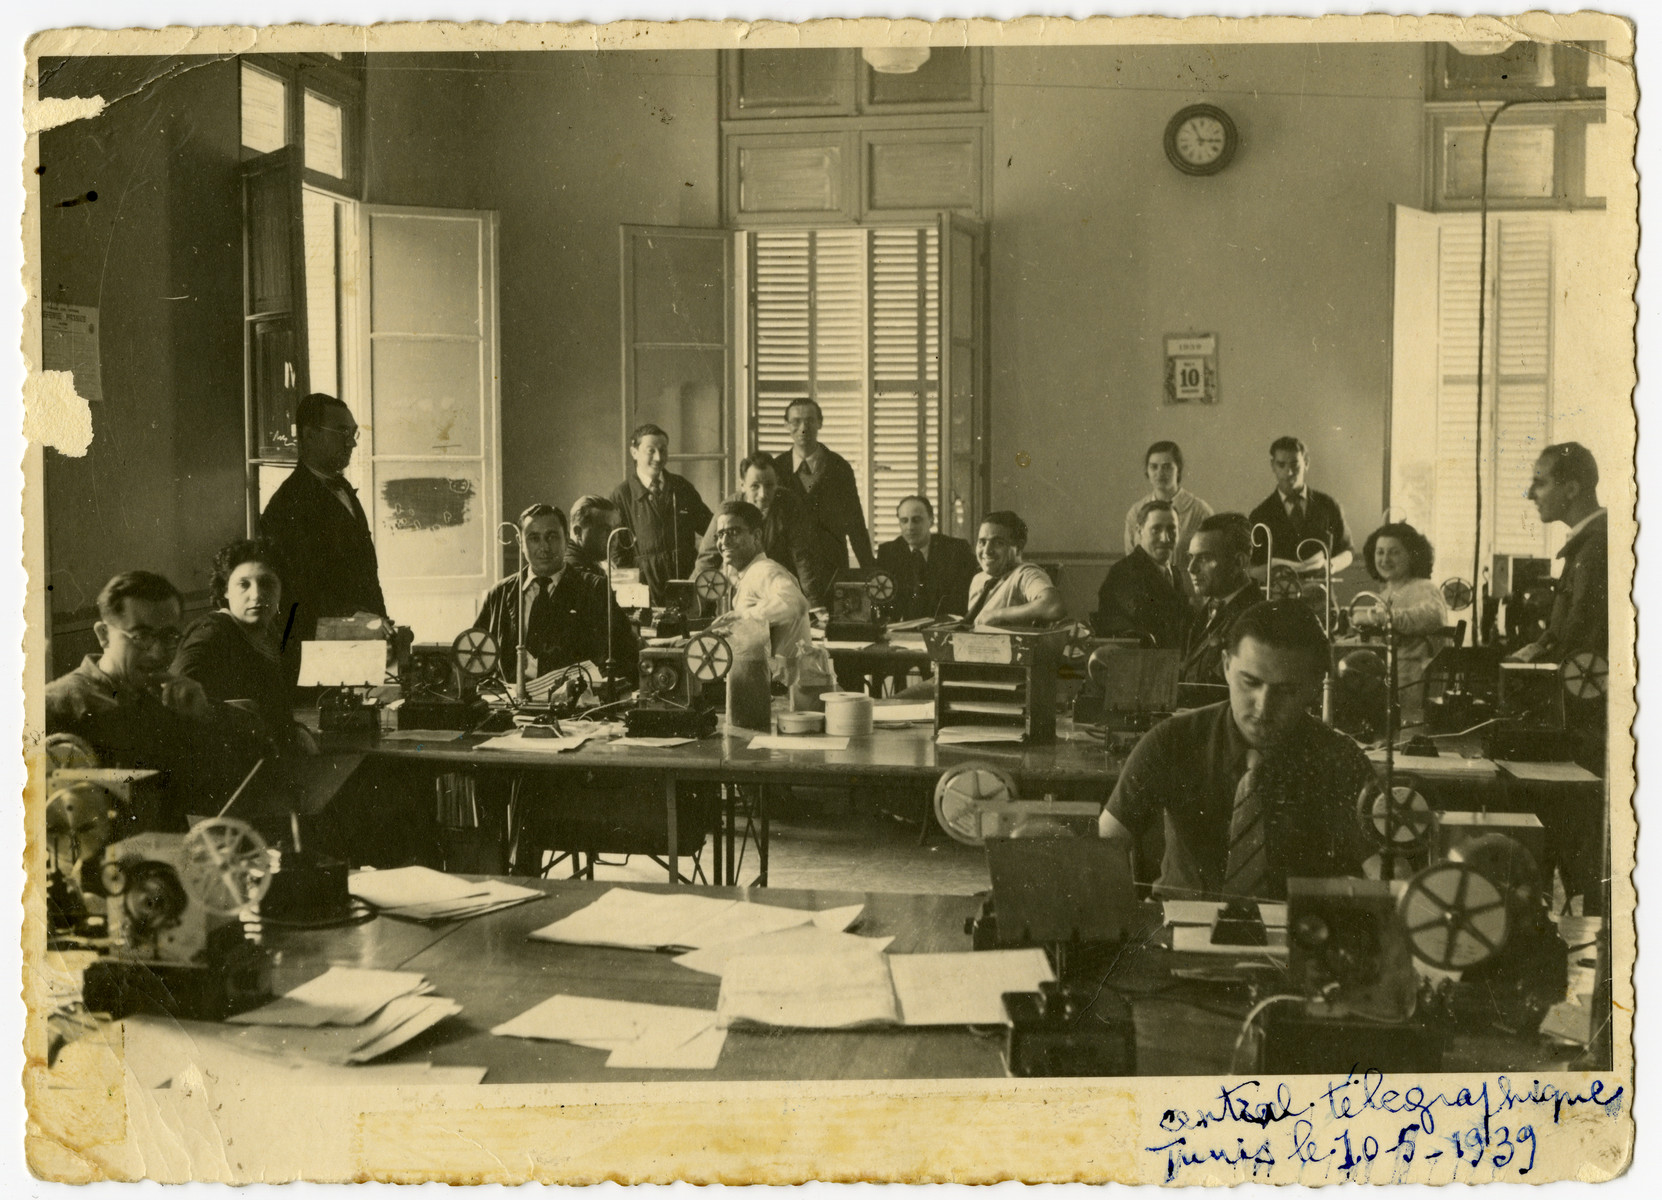 Workers of the Central Telegraph Office in Tunis operate their teletypes.  Arlette El Haik (later Benichou) is pictured near the window on the right.  Also pictured are Bost, Clance, Florane, Mlle Allouche, Capot, Taieb, Costa, Vitalis, Ousedere and Canavaggio.